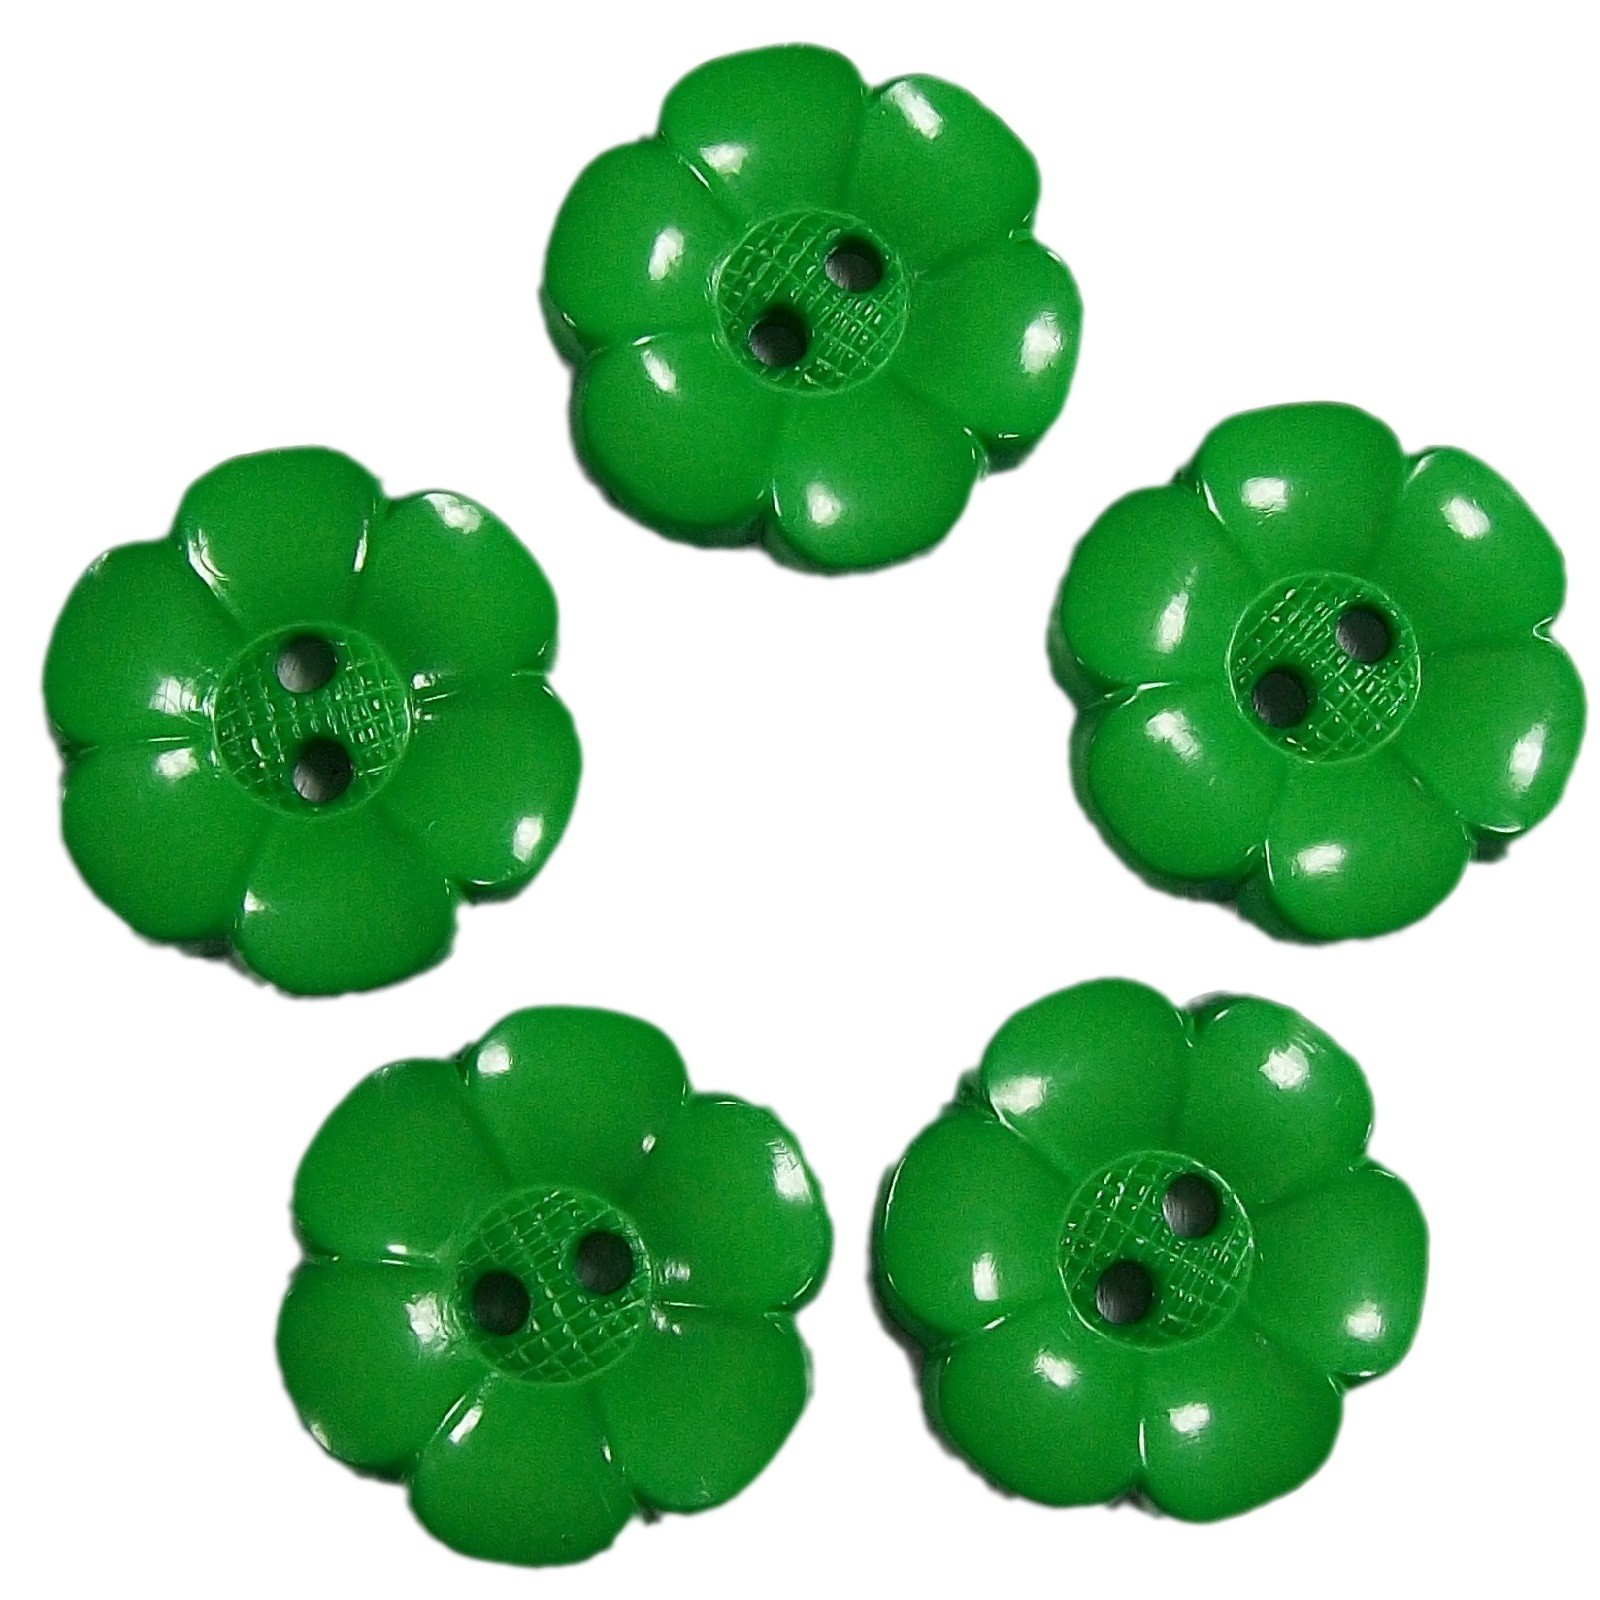 Large Daisy Flower Feature Button 22mm Green Pack of 5